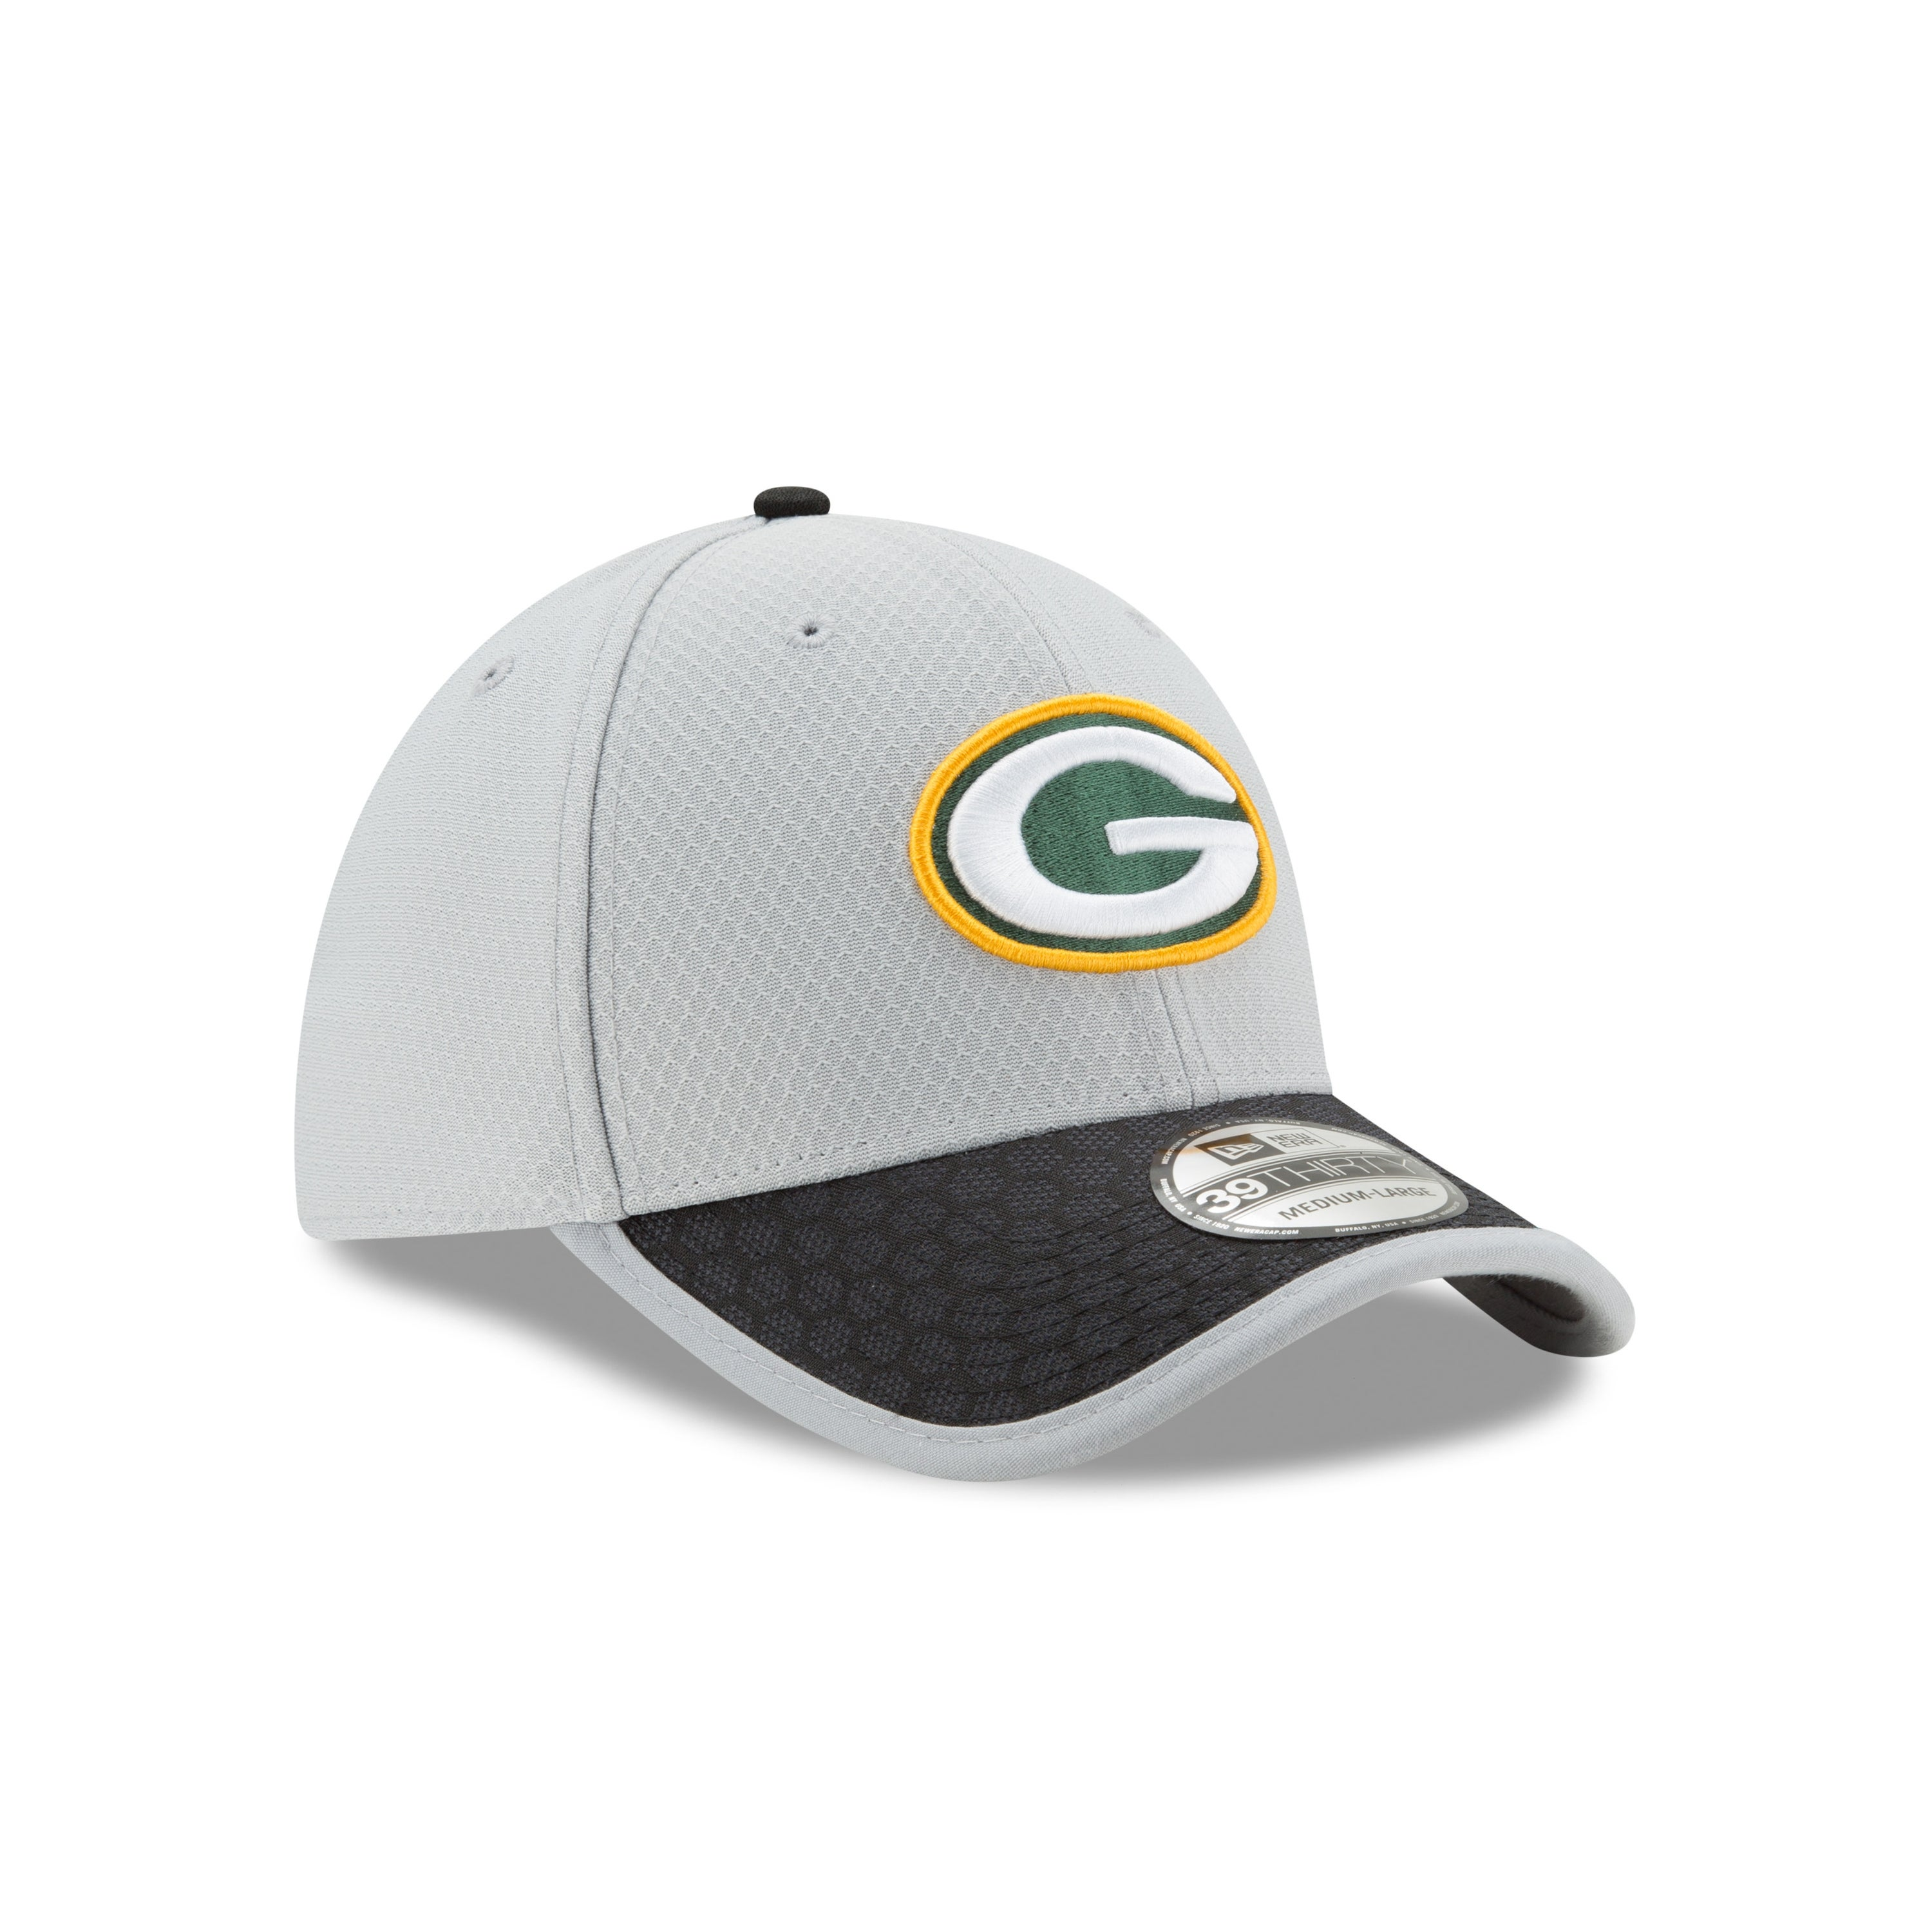 6e2f1322551 Shop Green Bay Packers 39THIRTY 2017 Sideline Hat